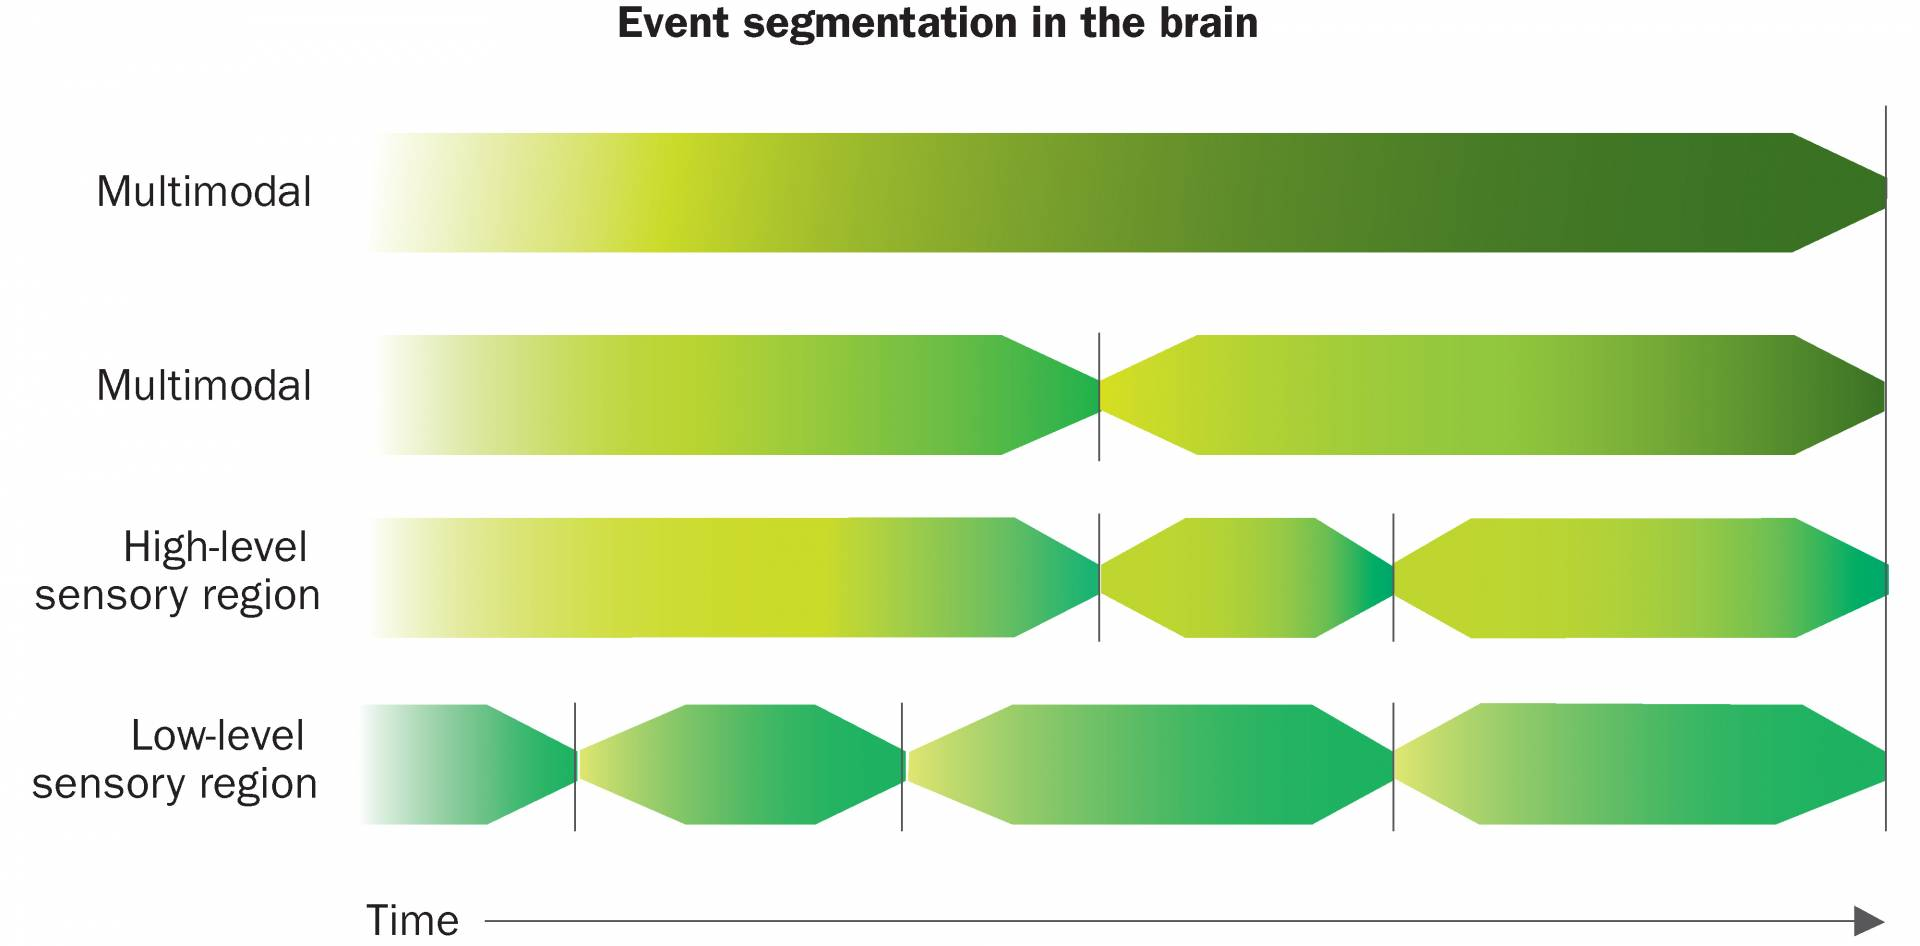 Event segmentation in the brain